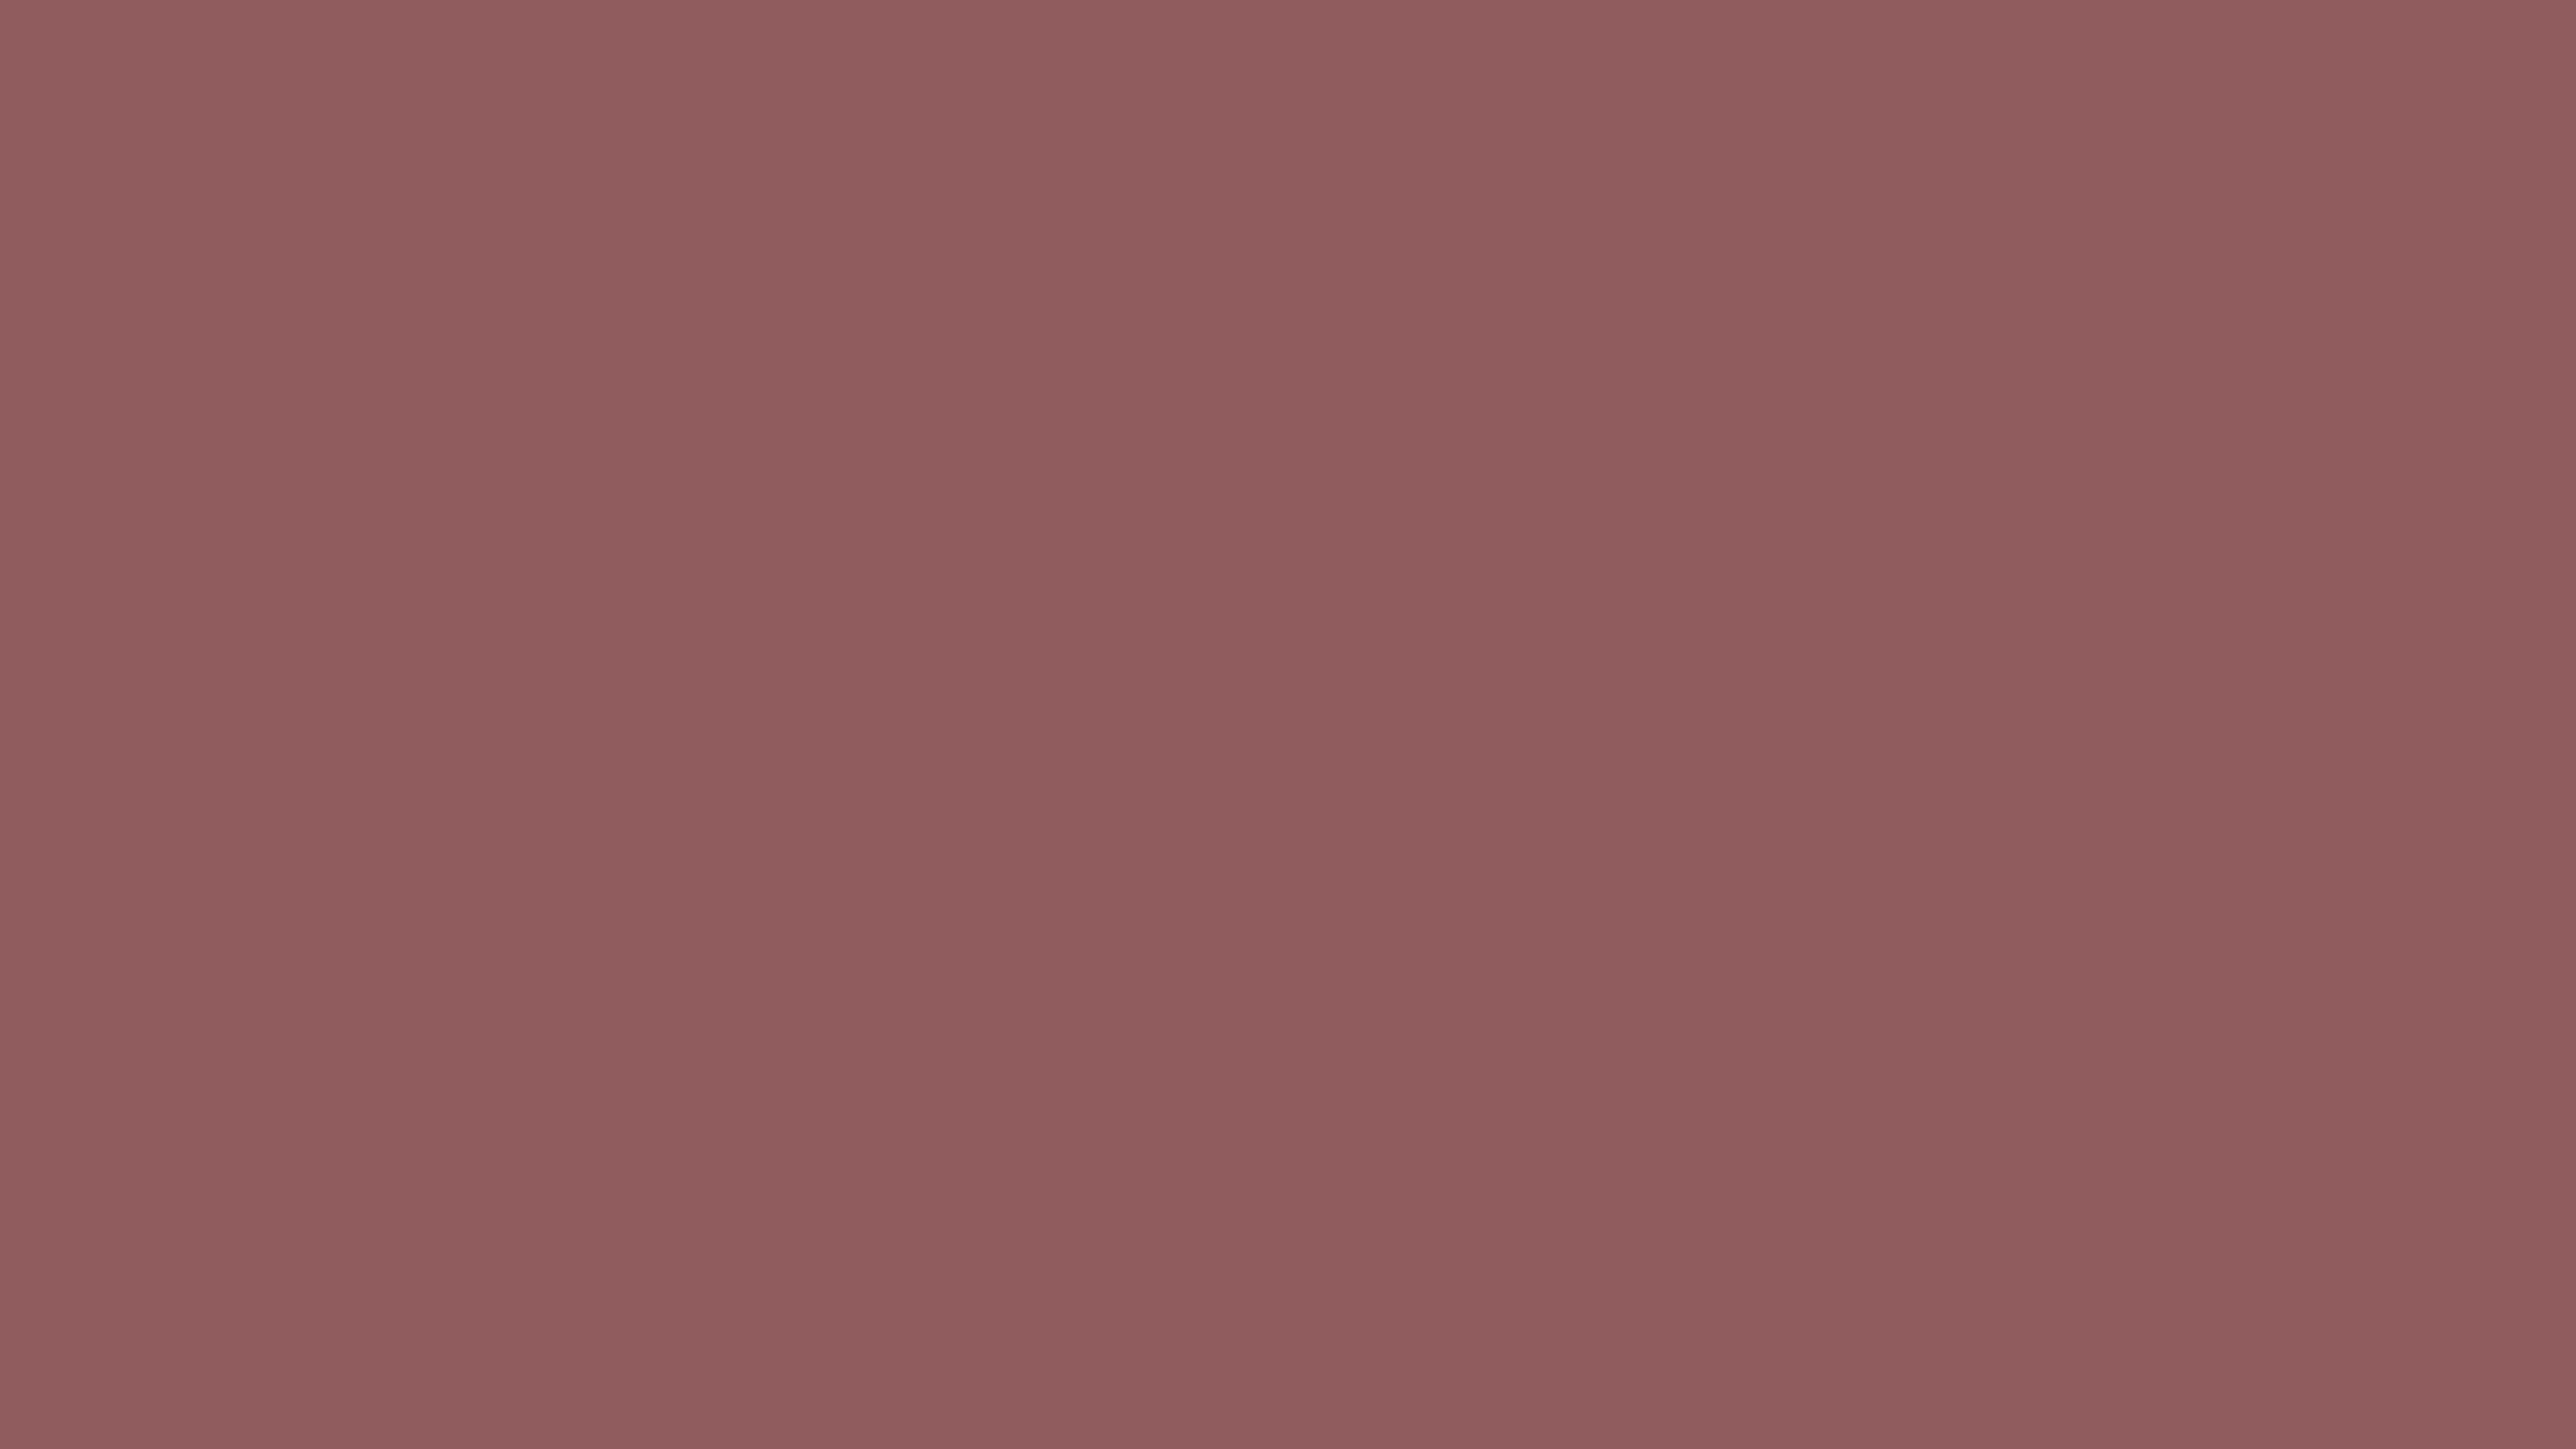 4096x2304 Rose Taupe Solid Color Background